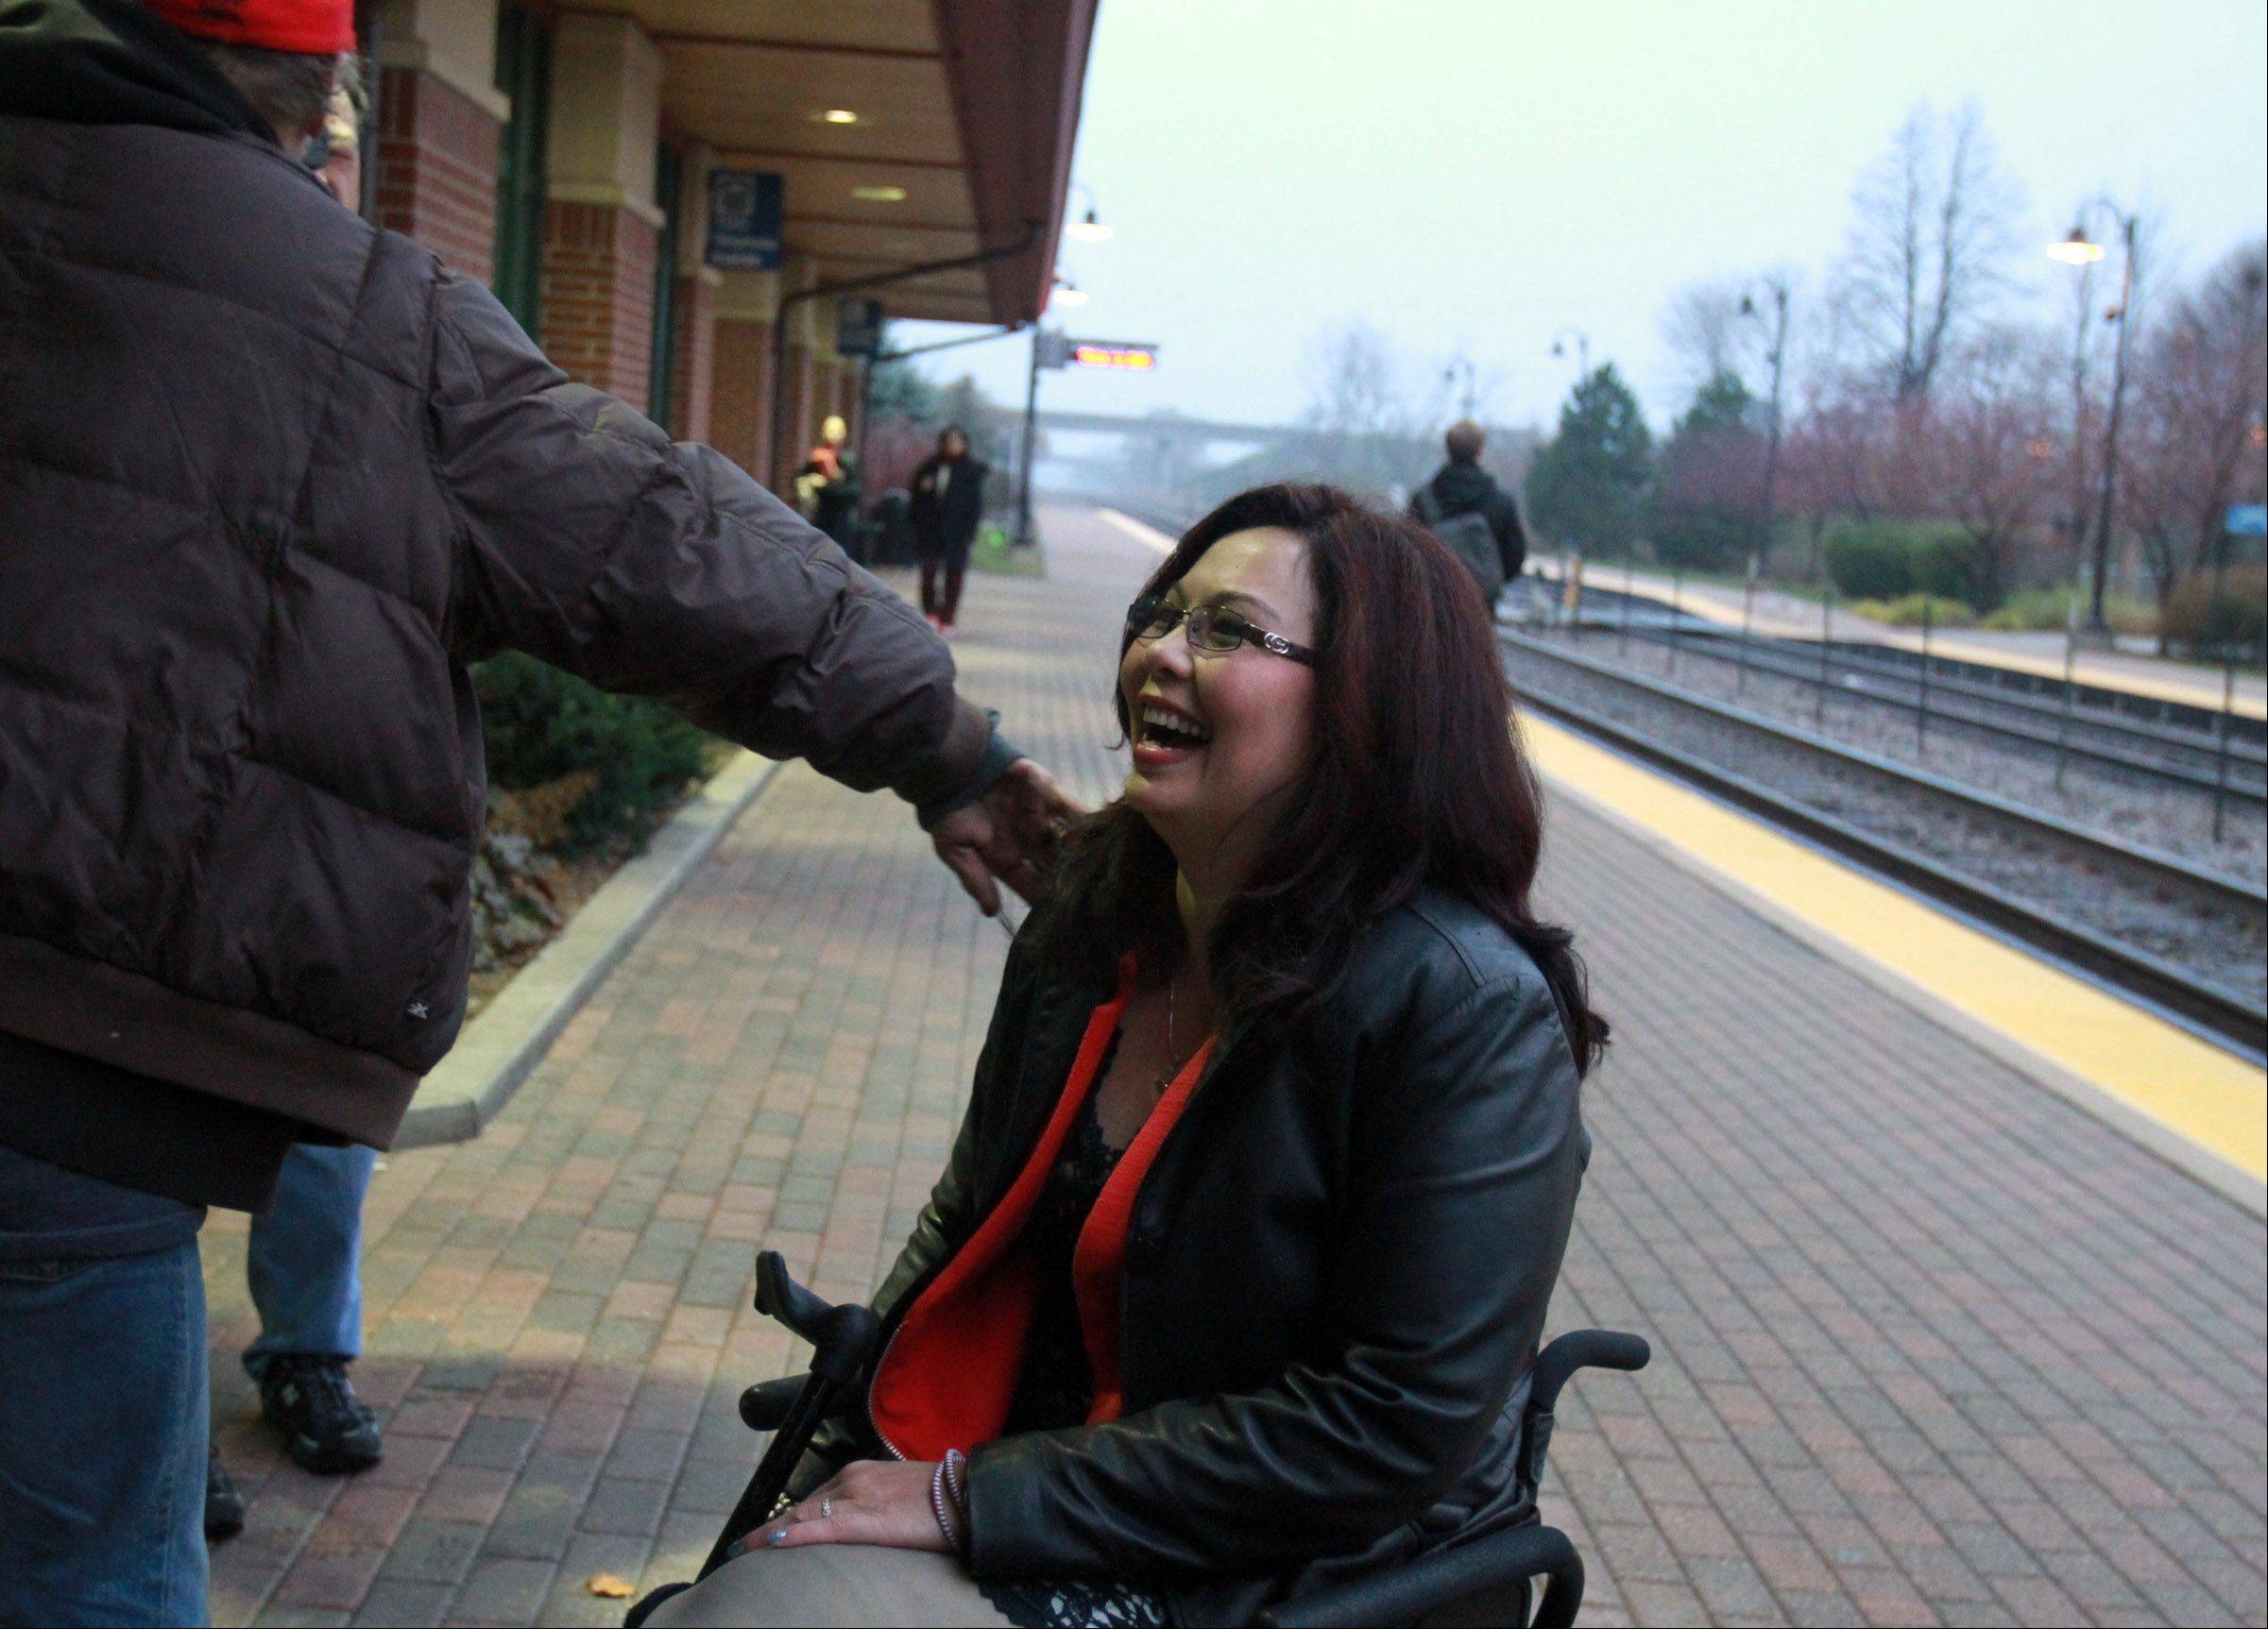 Tammy Duckworth greets people Wednesday morning at the Metra station in Schaumburg. Duckworth beat U.S. Rep. Joe Walsh to win election to Congress in the 8th District.